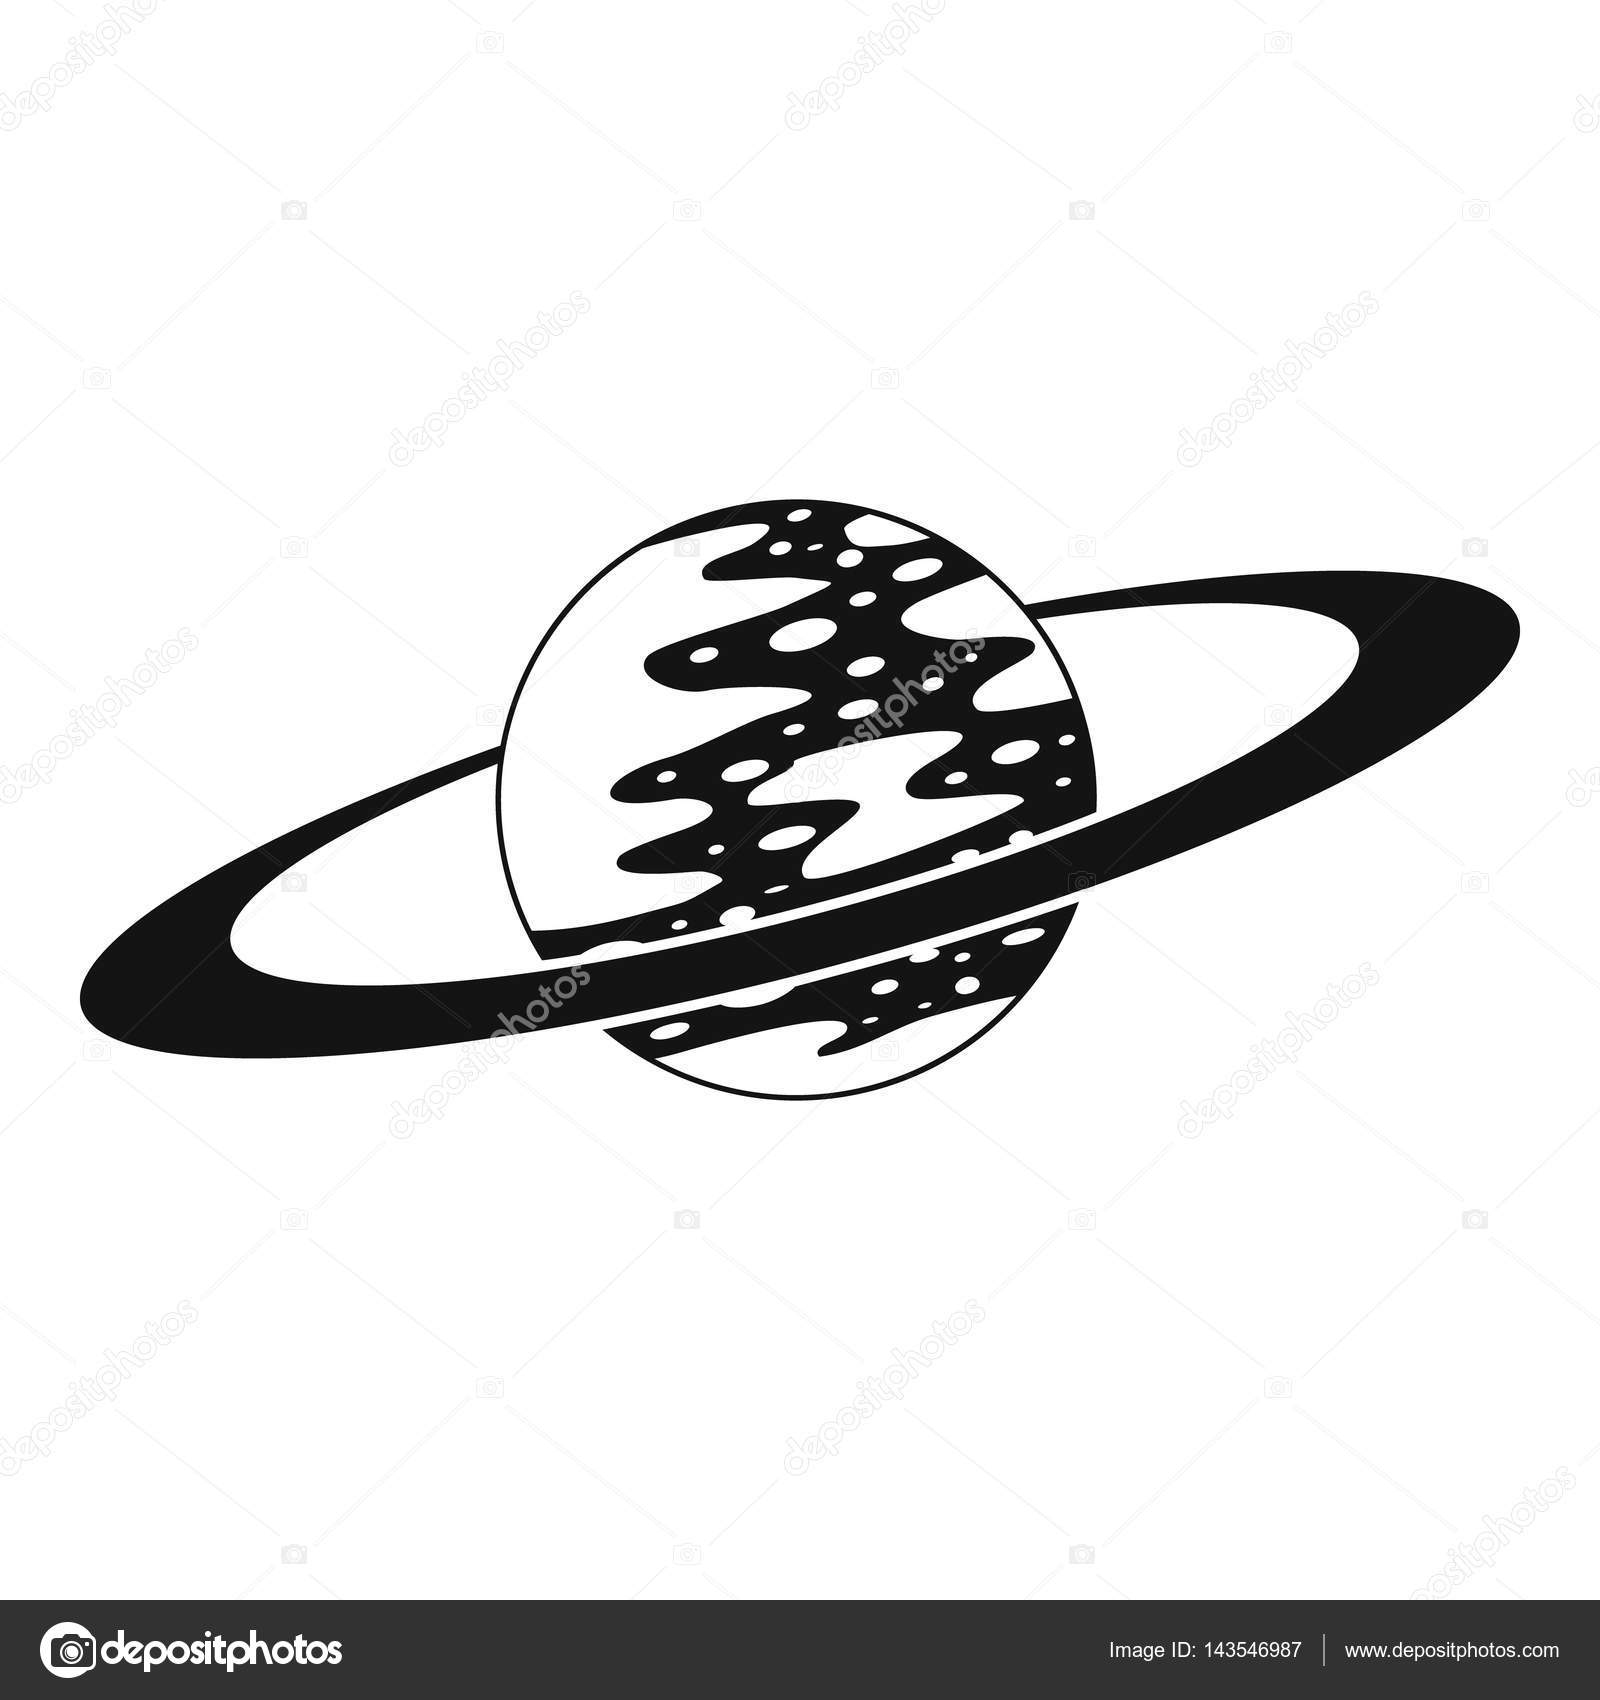 Saturn icon simple style stock vector ylivdesign 143546987 saturn icon simple style stock vector buycottarizona Image collections